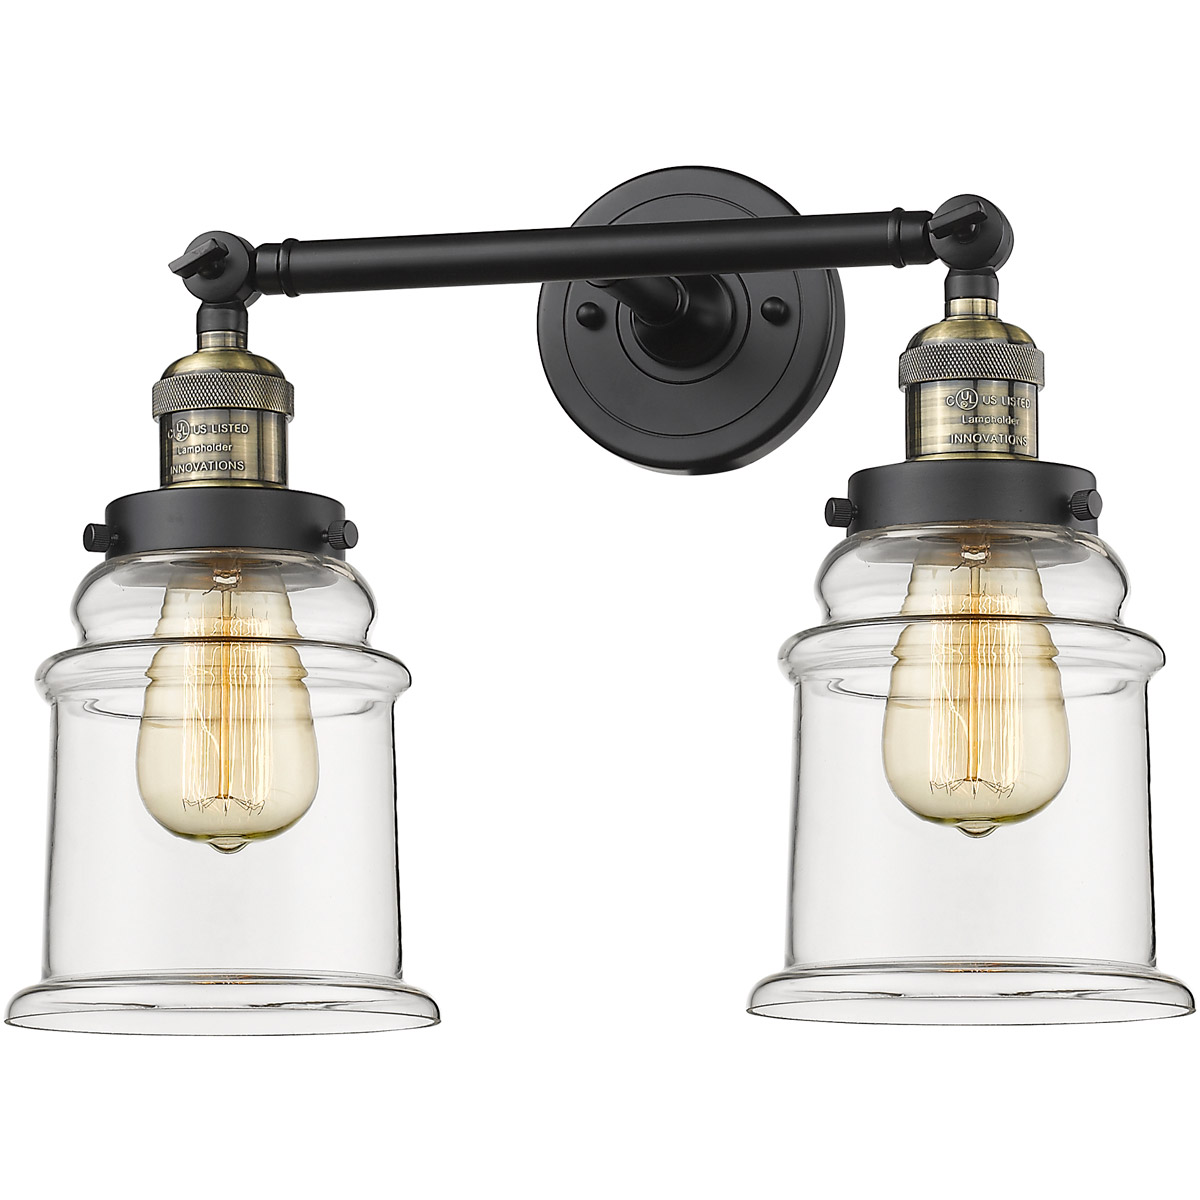 Bathroom Vanity 2 Light Fixtures With Black Antique Brass Finish Cast Brass Glass Material Medium 17 200 Watts Walmart Com Walmart Com